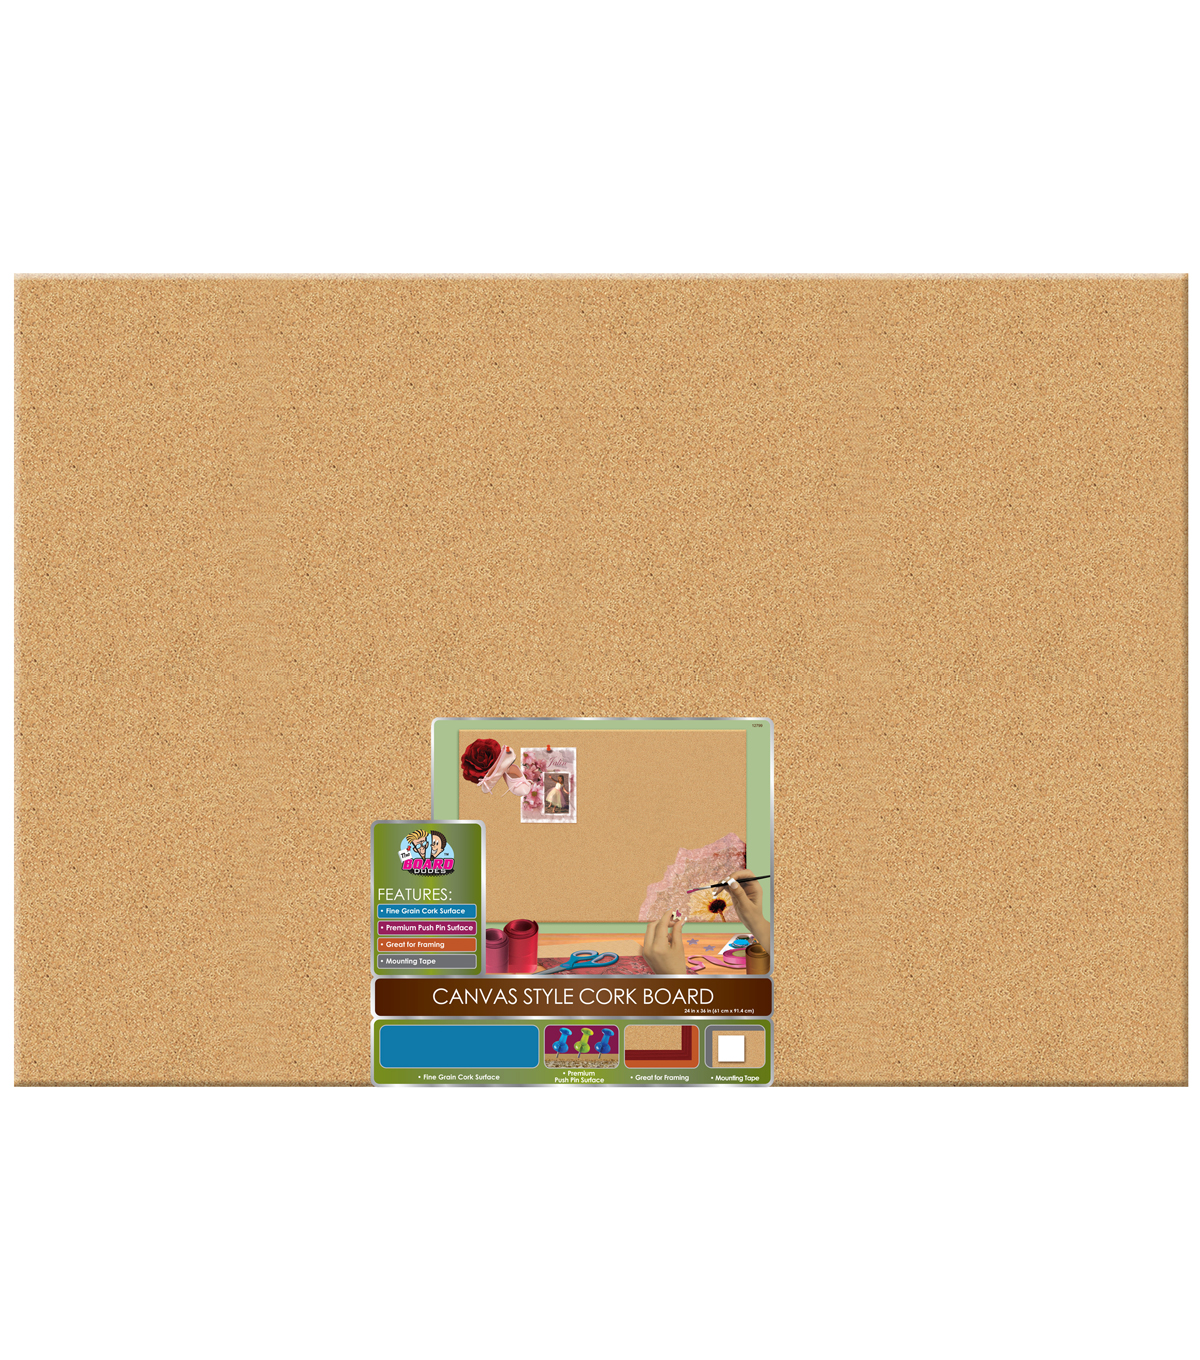 Uncategorized Cork Board No Frame 24x36 unframed cork bulletin board boards joann the 24u0027u0027x36u0027u0027 canvas style